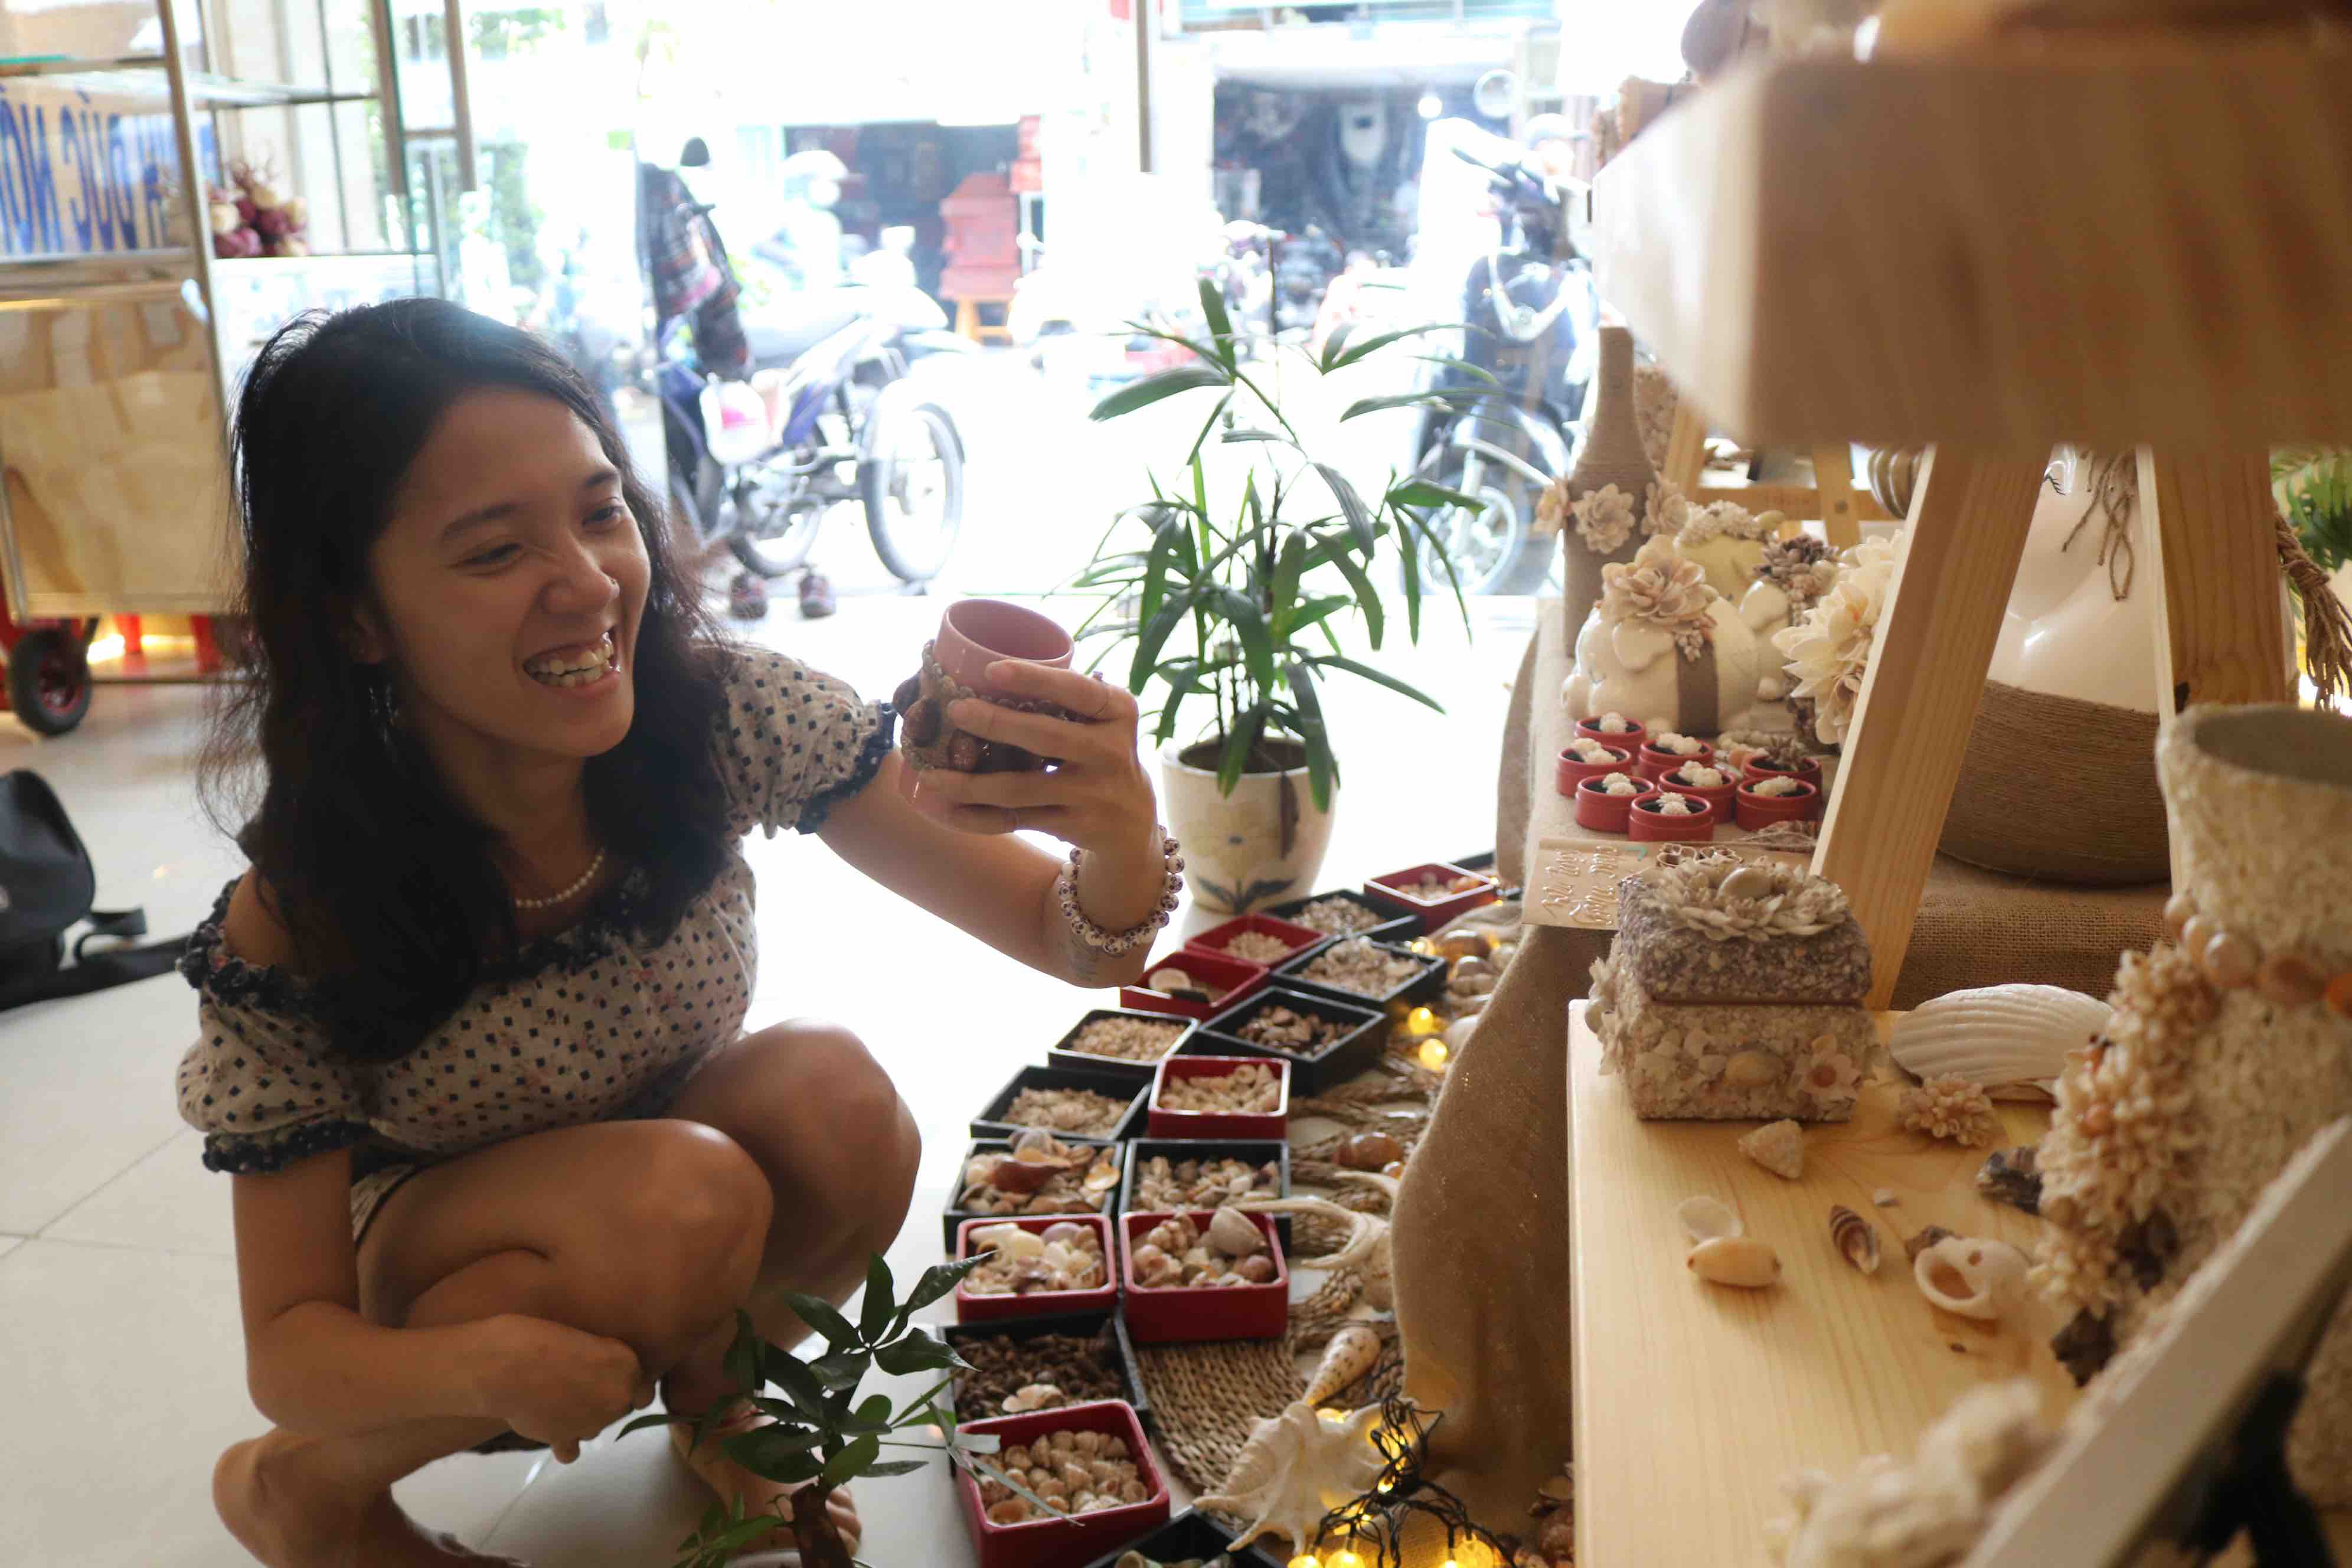 A guest with a shell product in her hands is seen at District 1, Ho Chi Minh City. Photo: Hoang An / Tuoi Tre